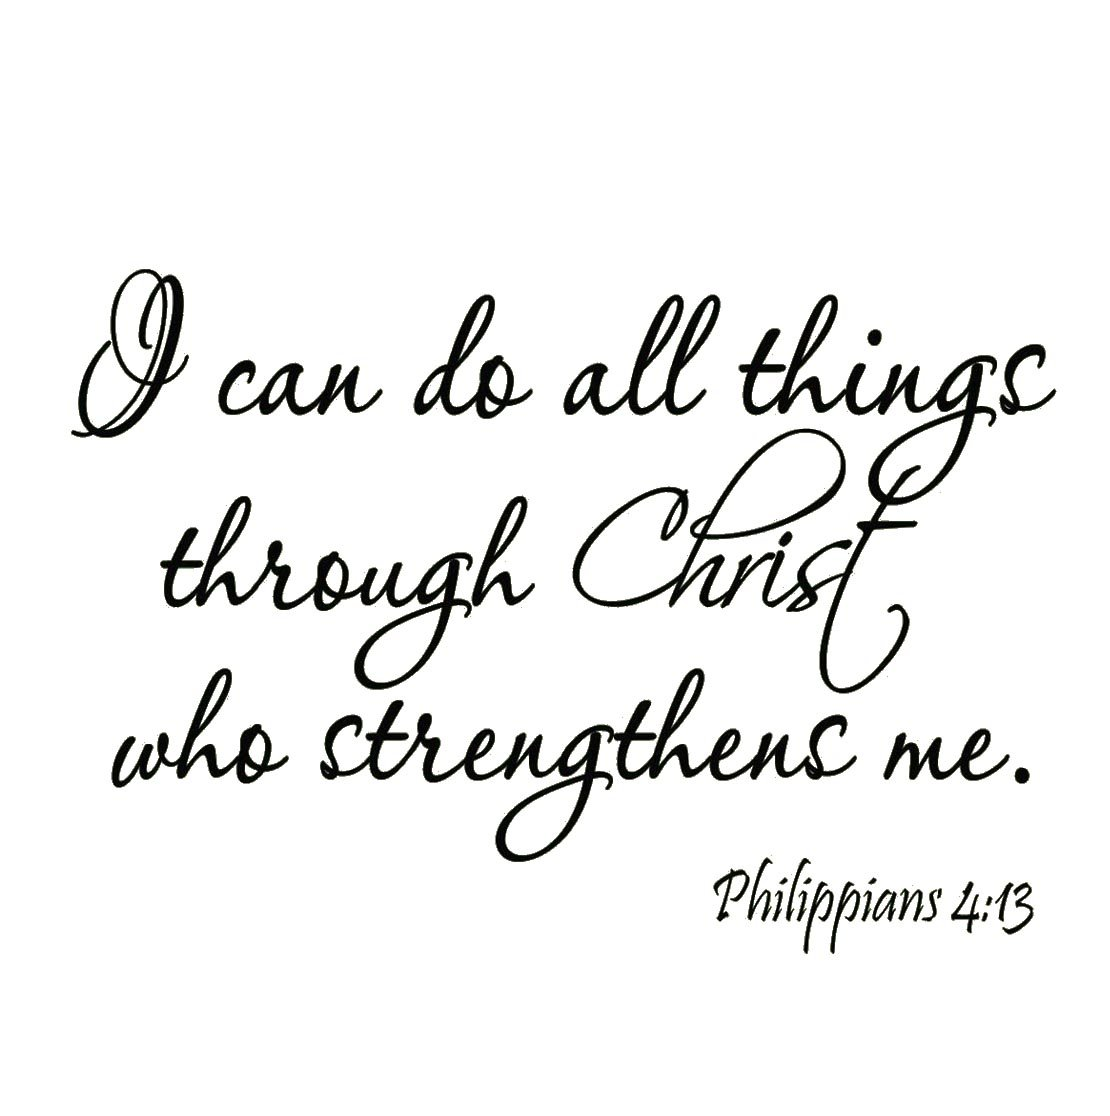 I Can Do All Things Through Christ Who Strengthens Me Philippians 4:13 Wall Decal Bible Scripture Christian Wall Art Quote Lettering Mural